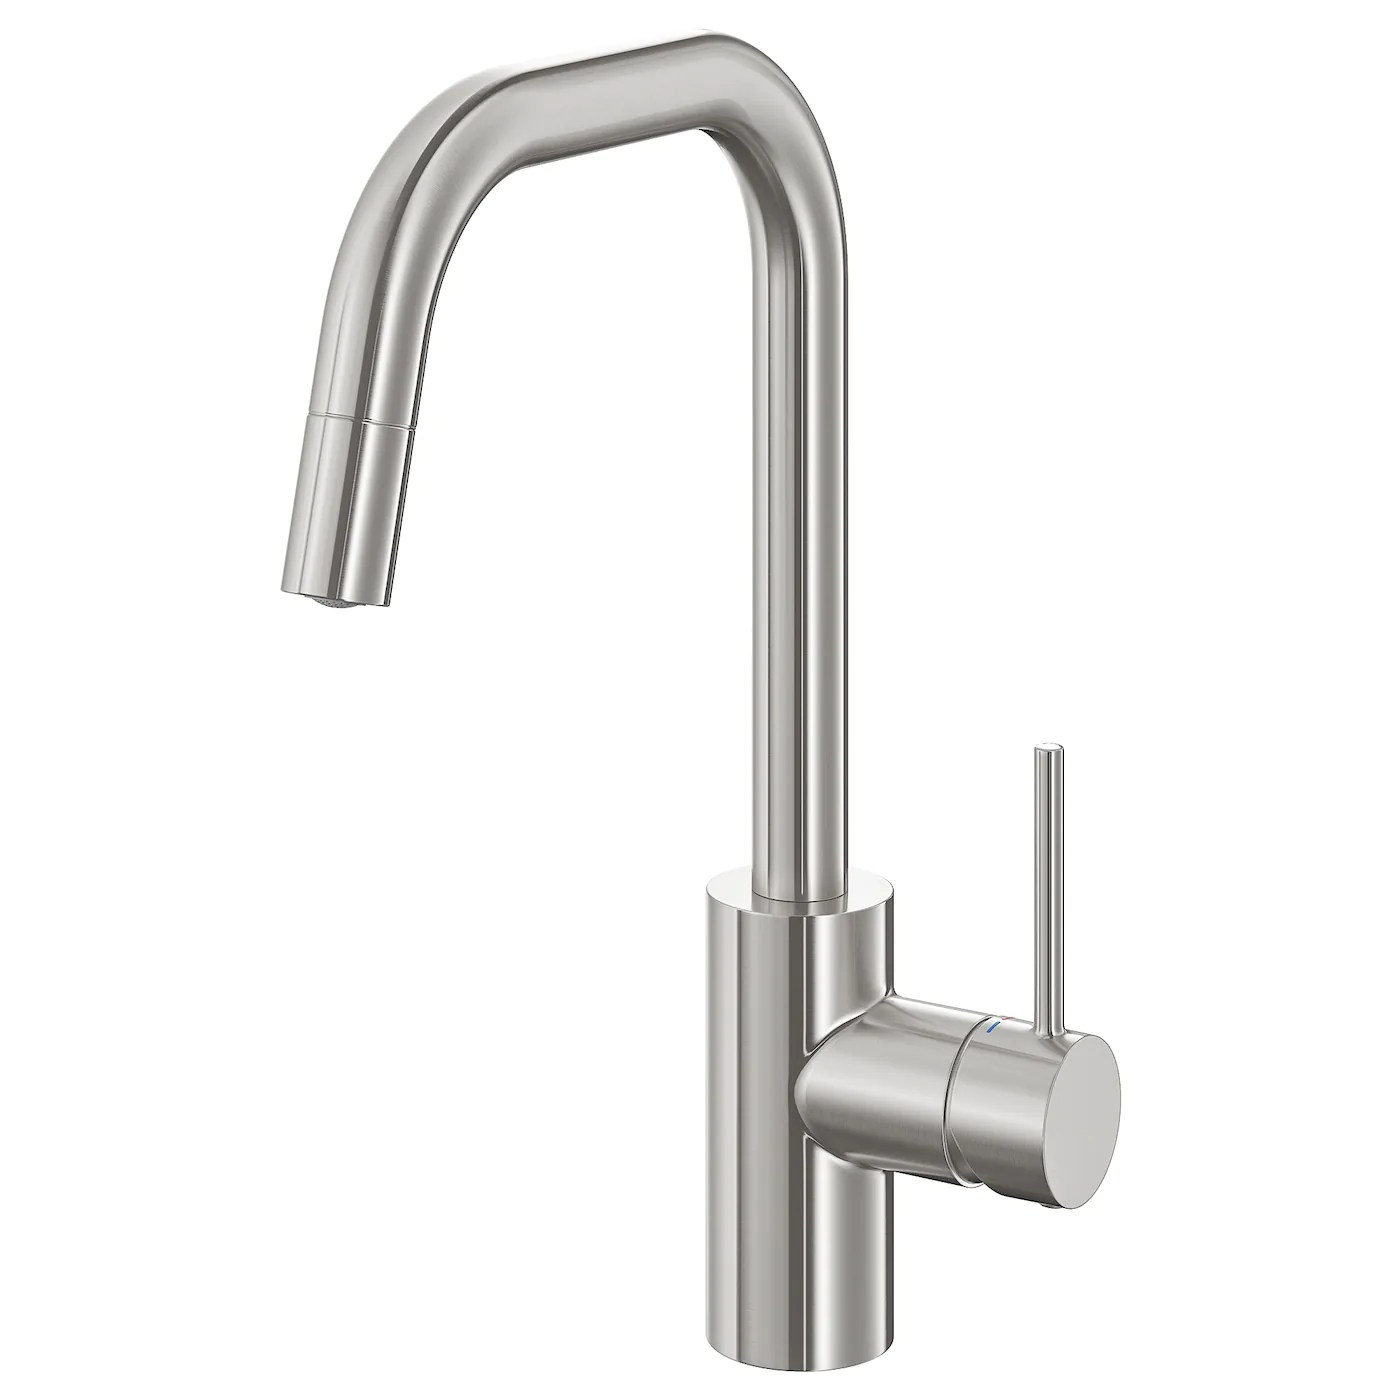 almaren kitchen faucet with pull out spout stainless steel color